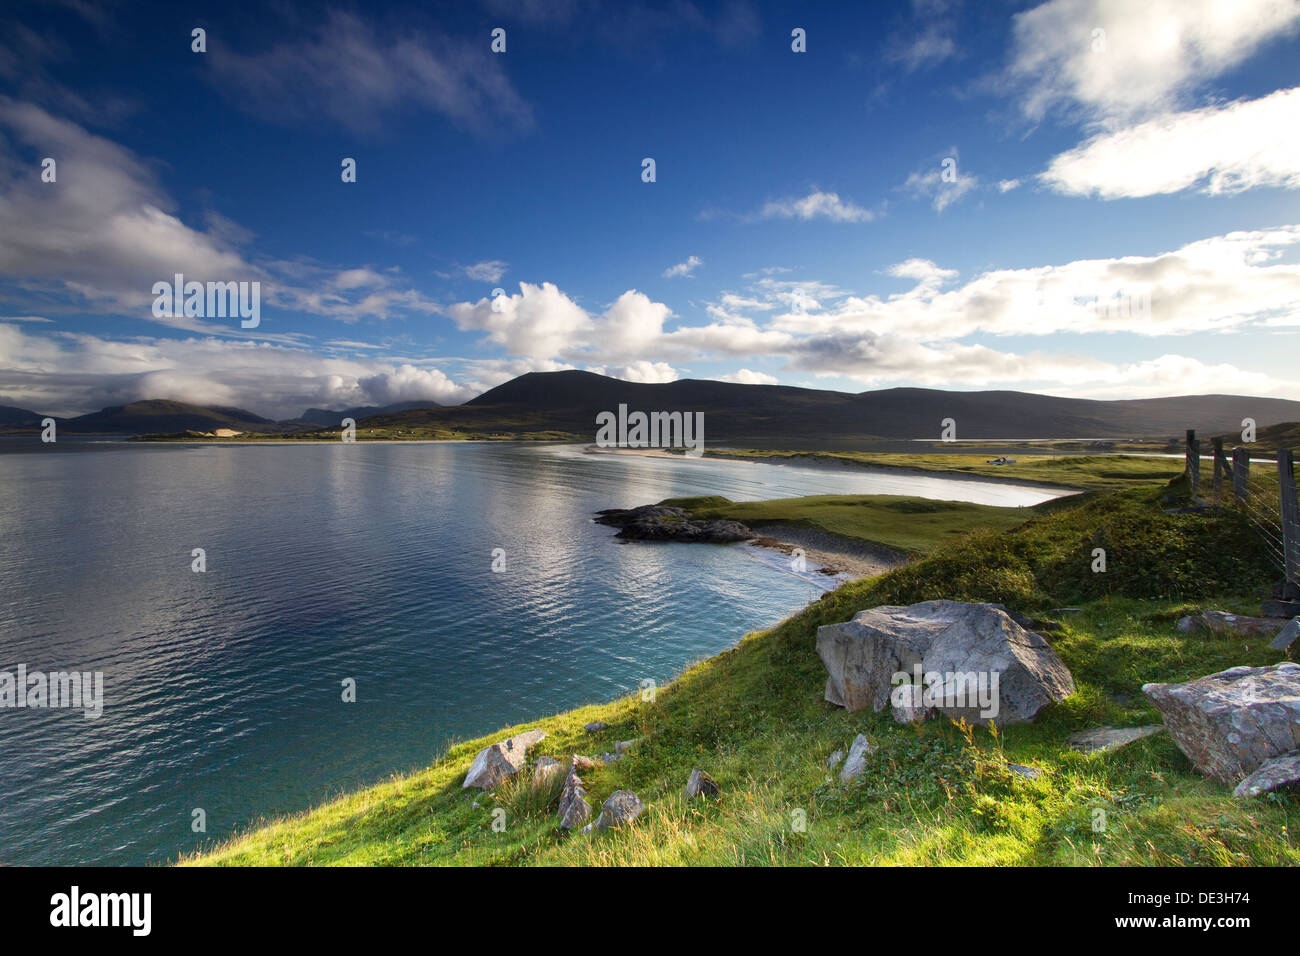 A view over Seilebost and Luskentyre beaches on the Isle of Harris, Scotland - Stock Image